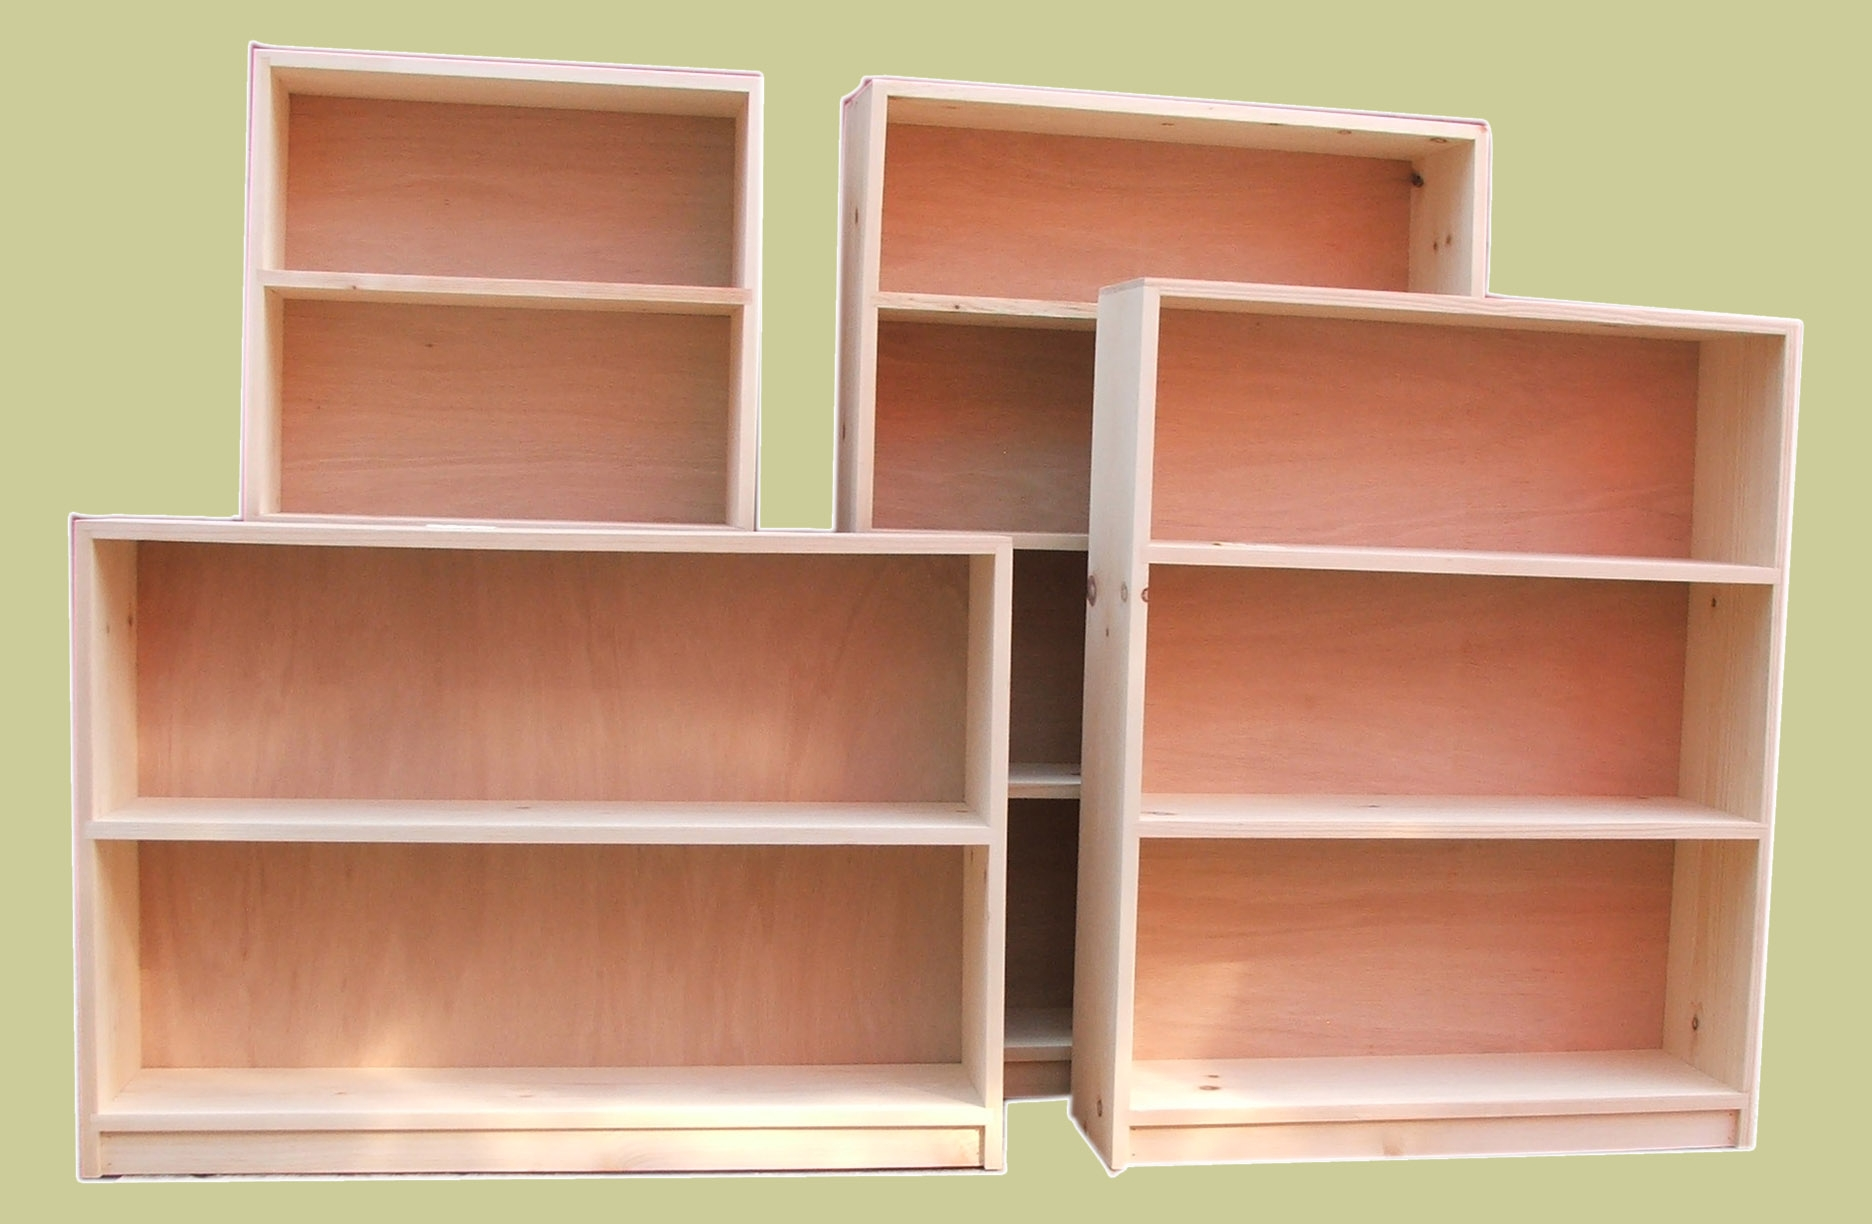 New Furniture For Handmade Bookcase (View 12 of 15)